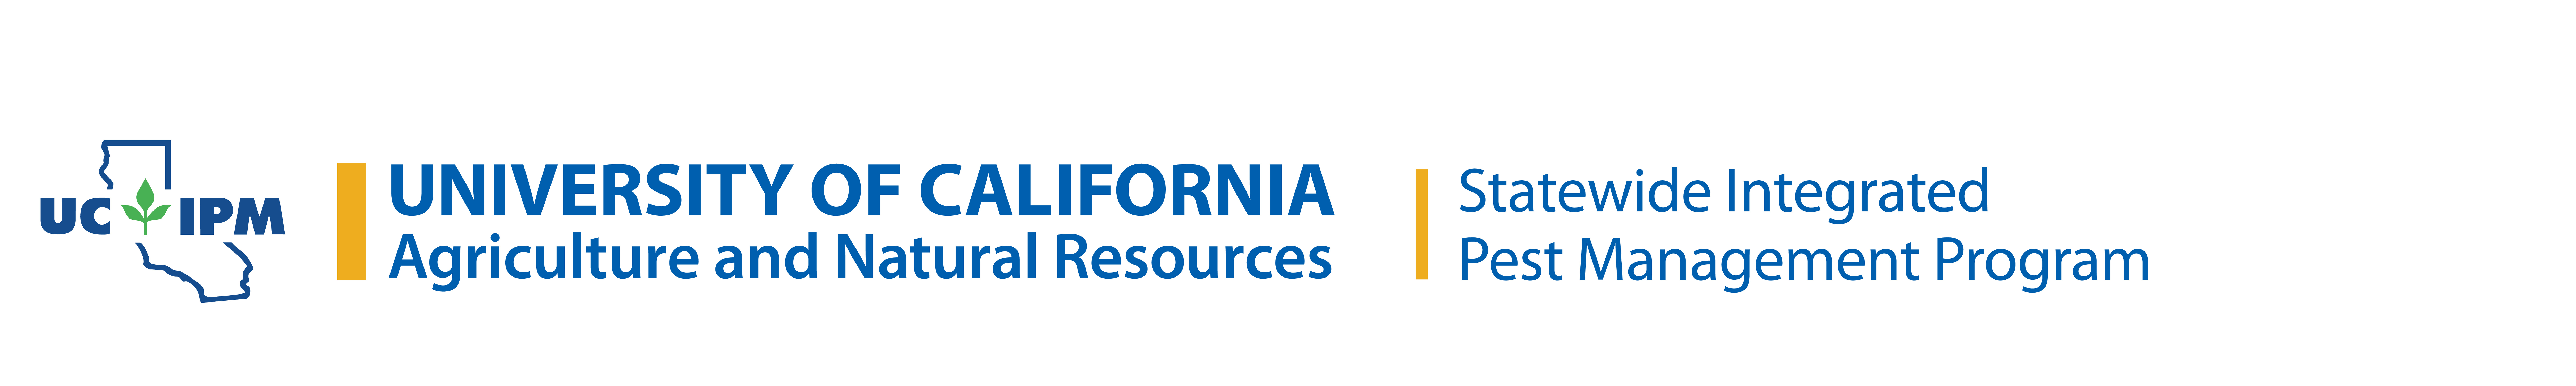 Logo: University of California (UC) Statewide Integrated Pest Management Program and UC Agriculture and Natural Resources